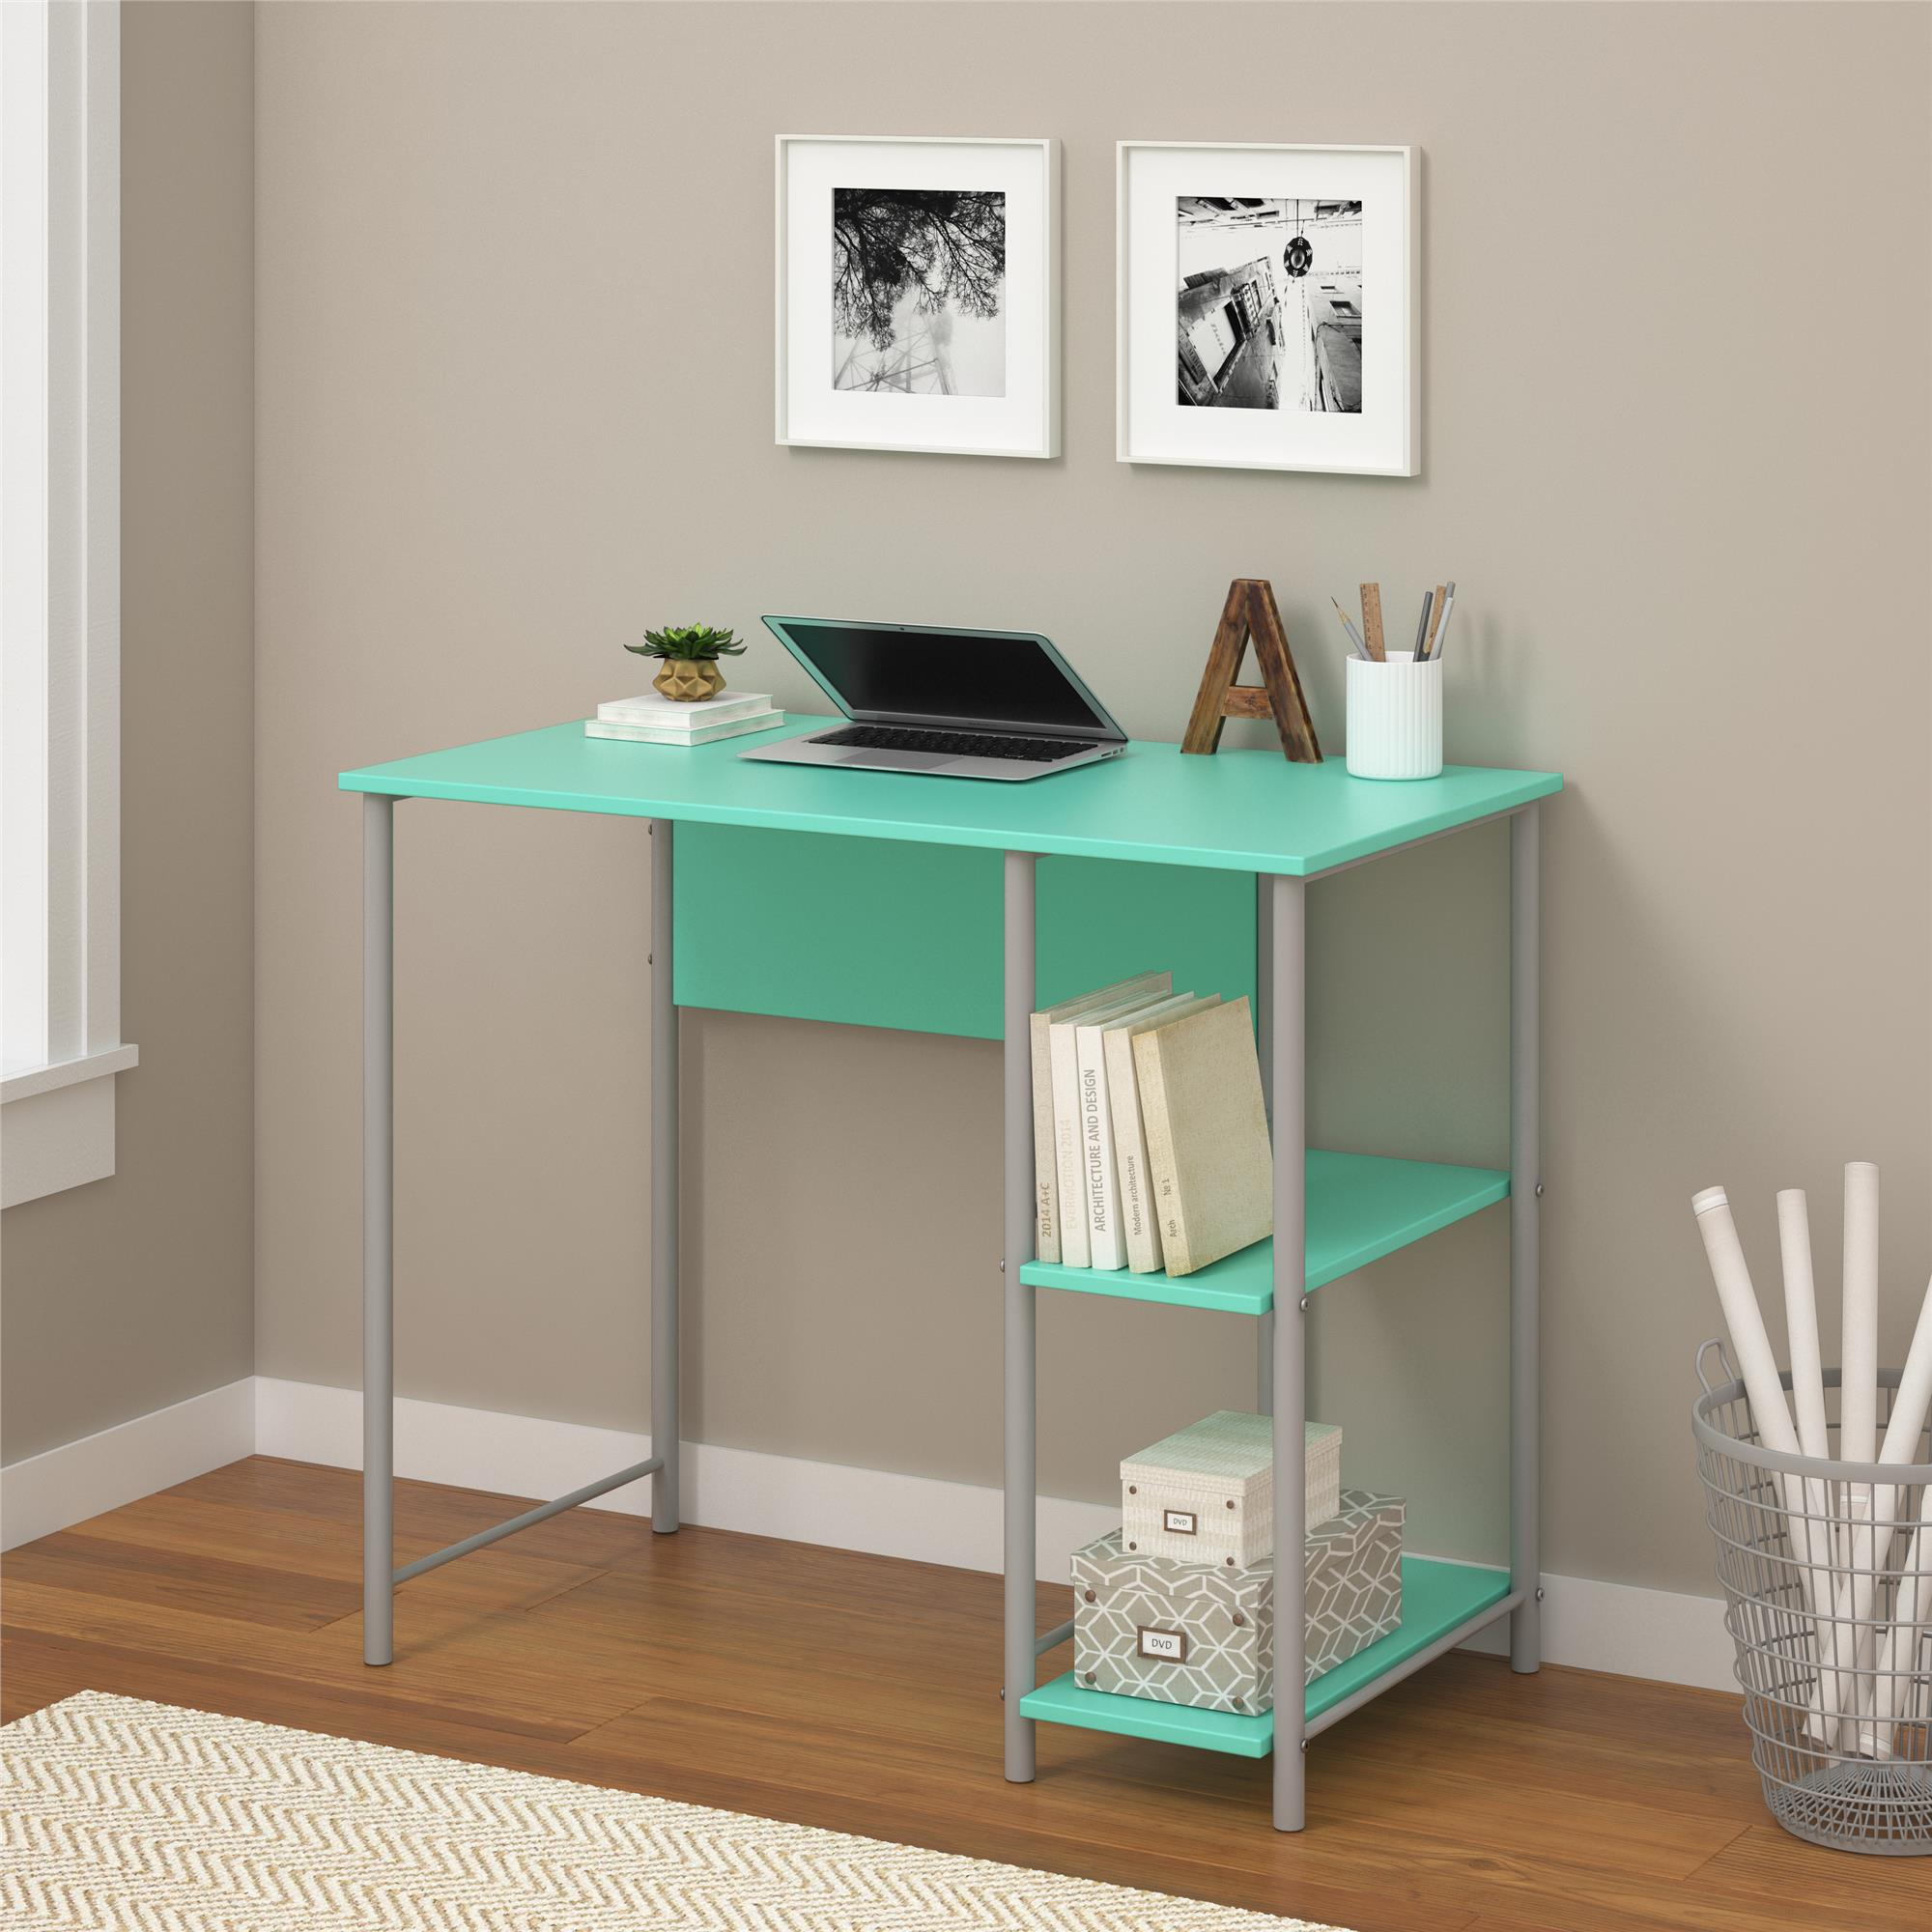 Stupendous Details About Ameriwood Home Garrett Metal Home Office Computer Desk With 2 Side Shelves New Home Interior And Landscaping Ologienasavecom